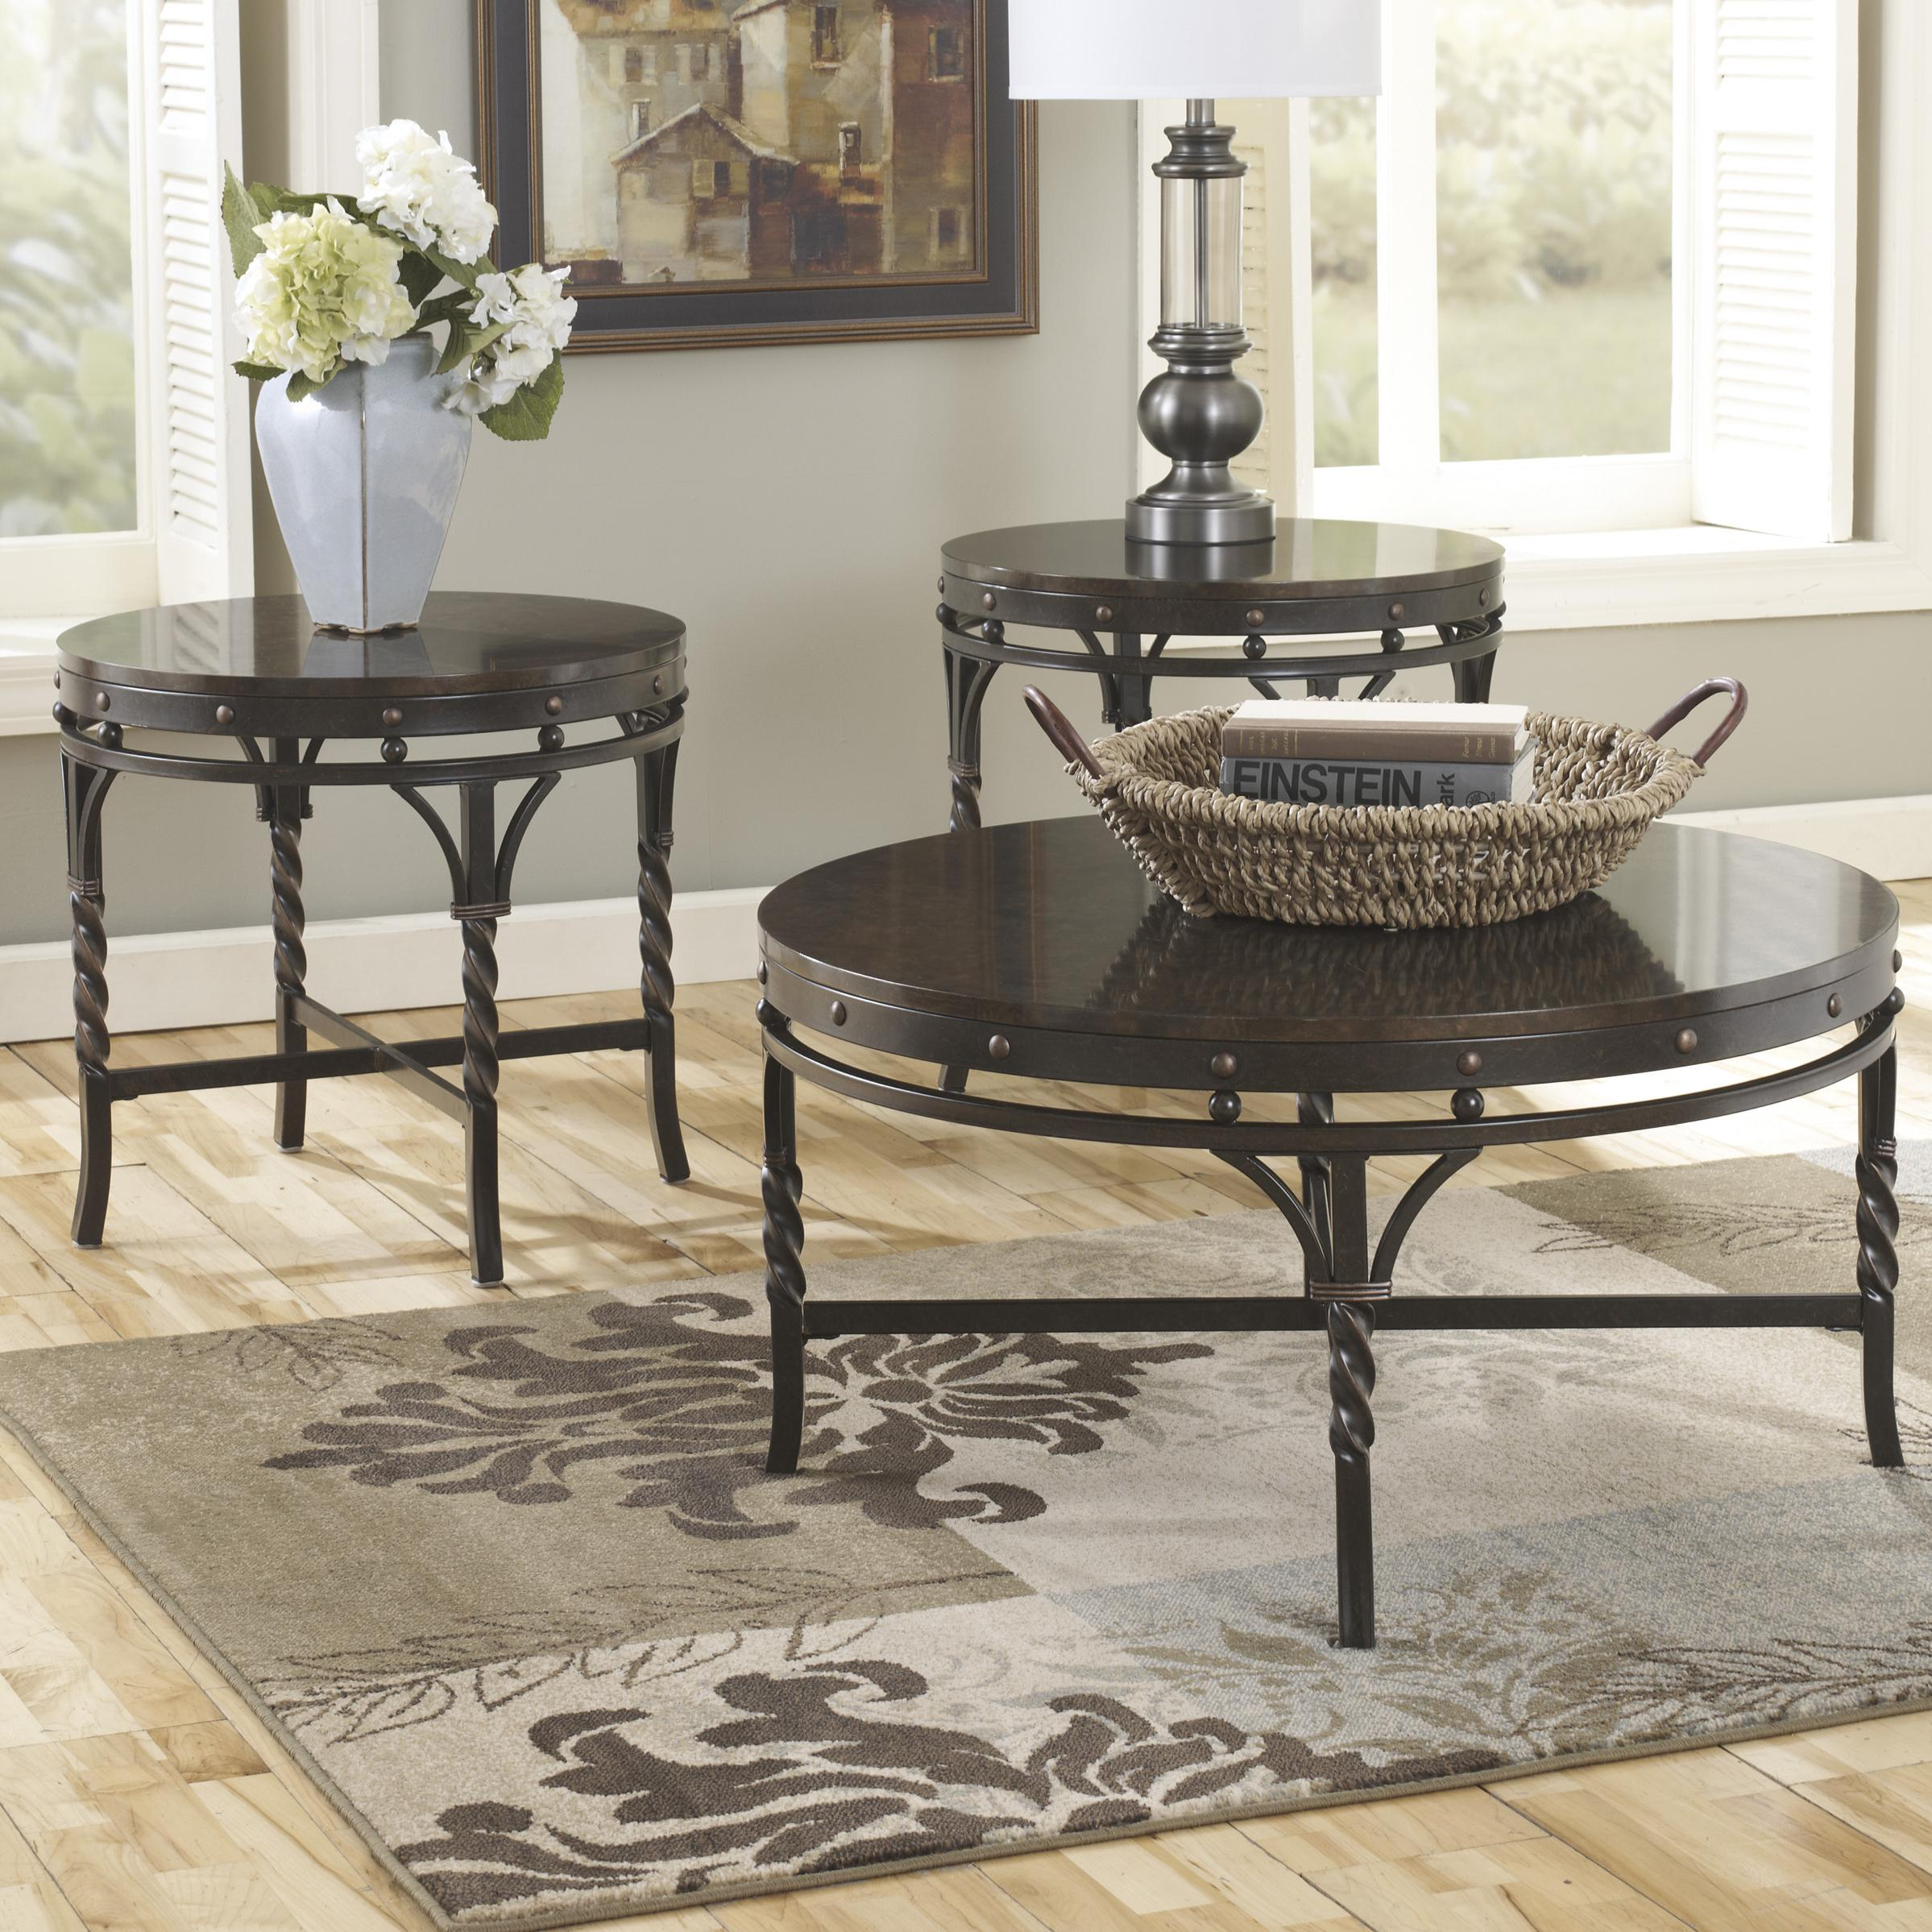 Signature Design by Ashley Brindleton Occasional Table Set - Item Number: T265-13